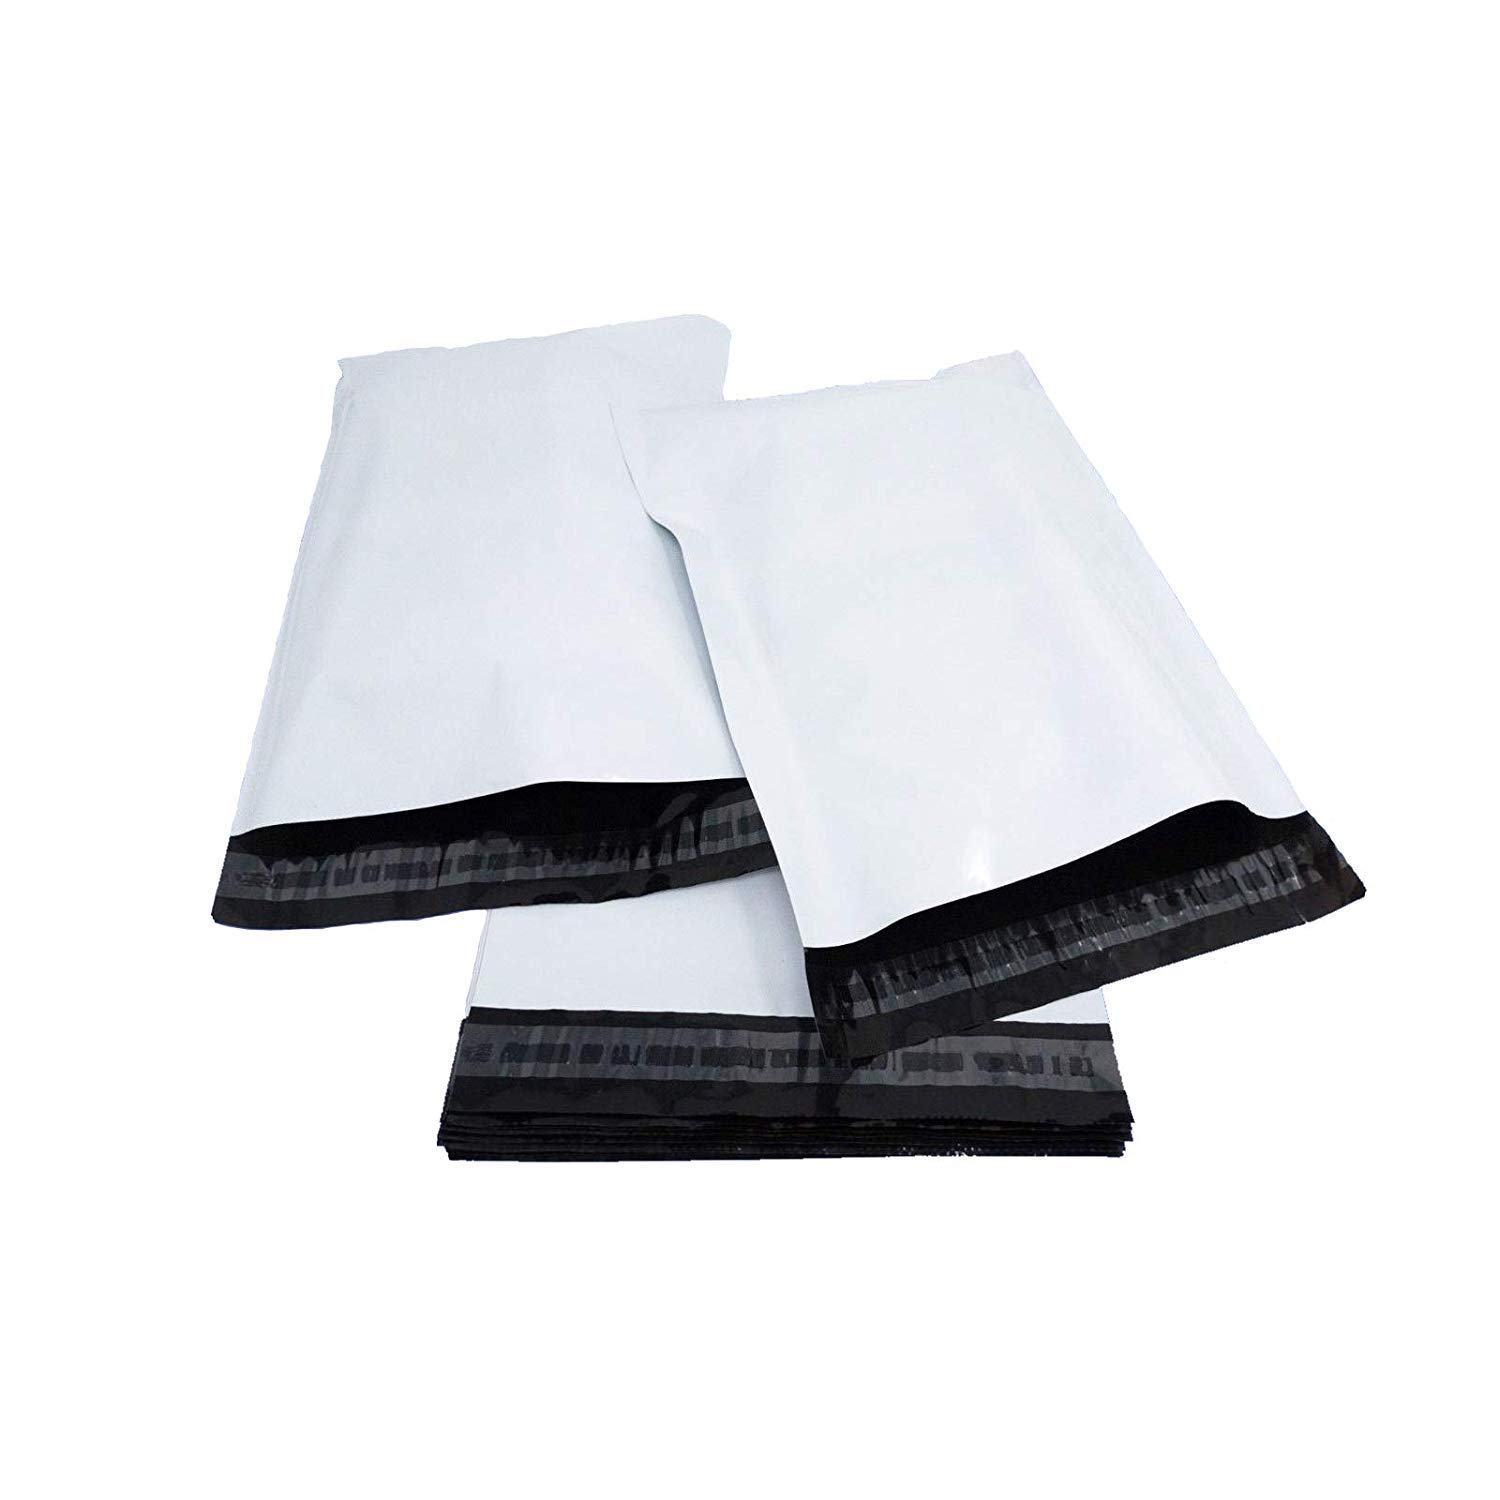 Grey Mailing Bags Plastic Mail Post Postage Polythene Strong Self Seal 10 x 14 25 x 36cm 100 Bags